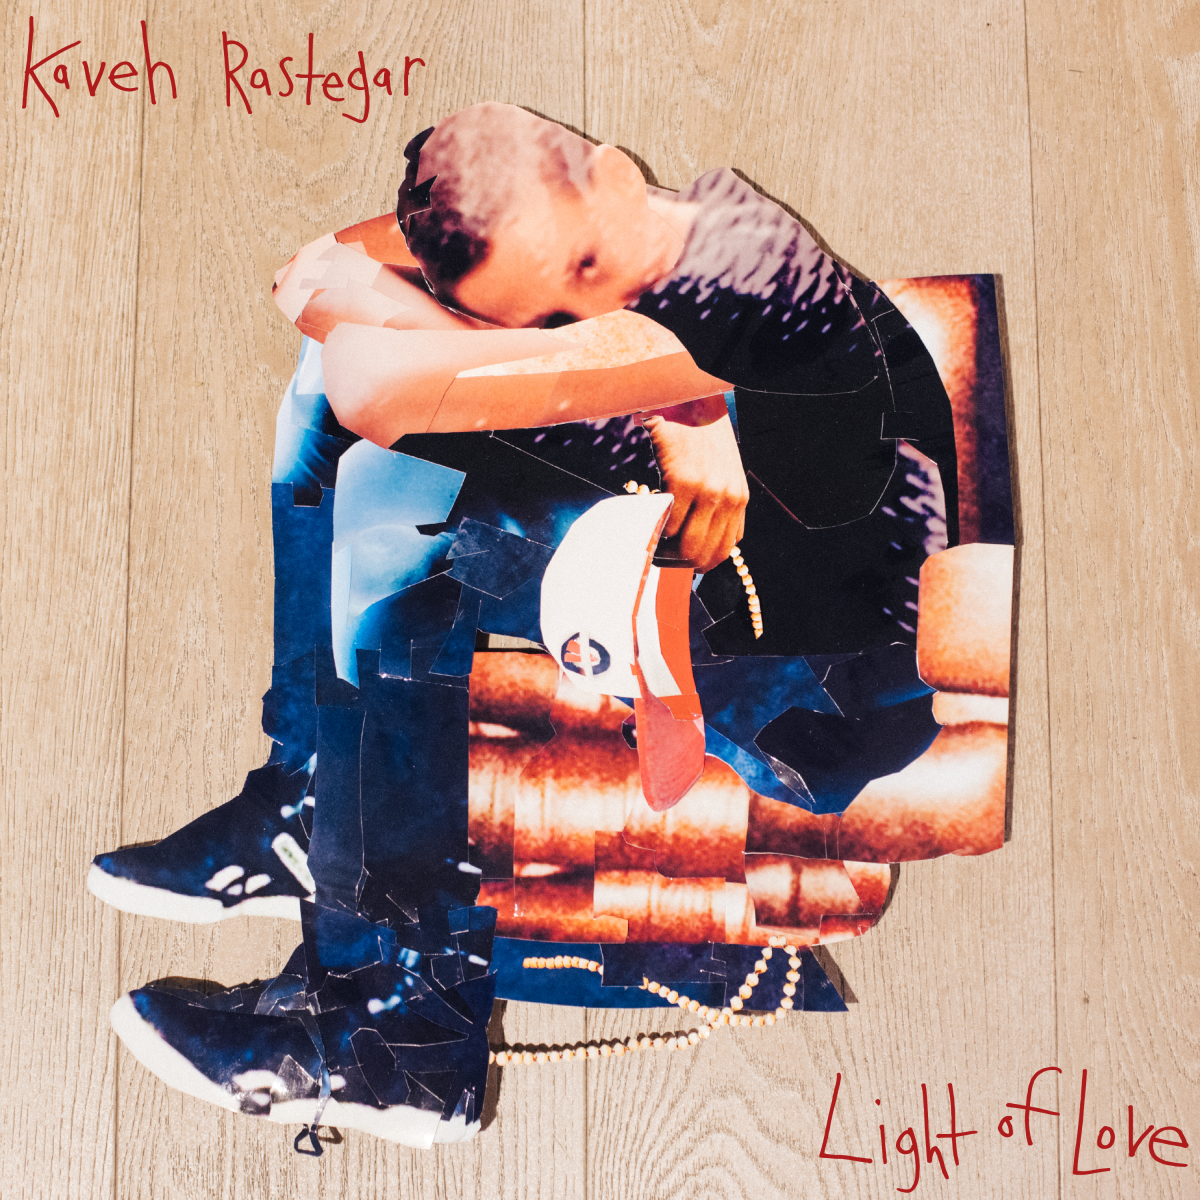 LIGHT OF LOVE FINAL COVER